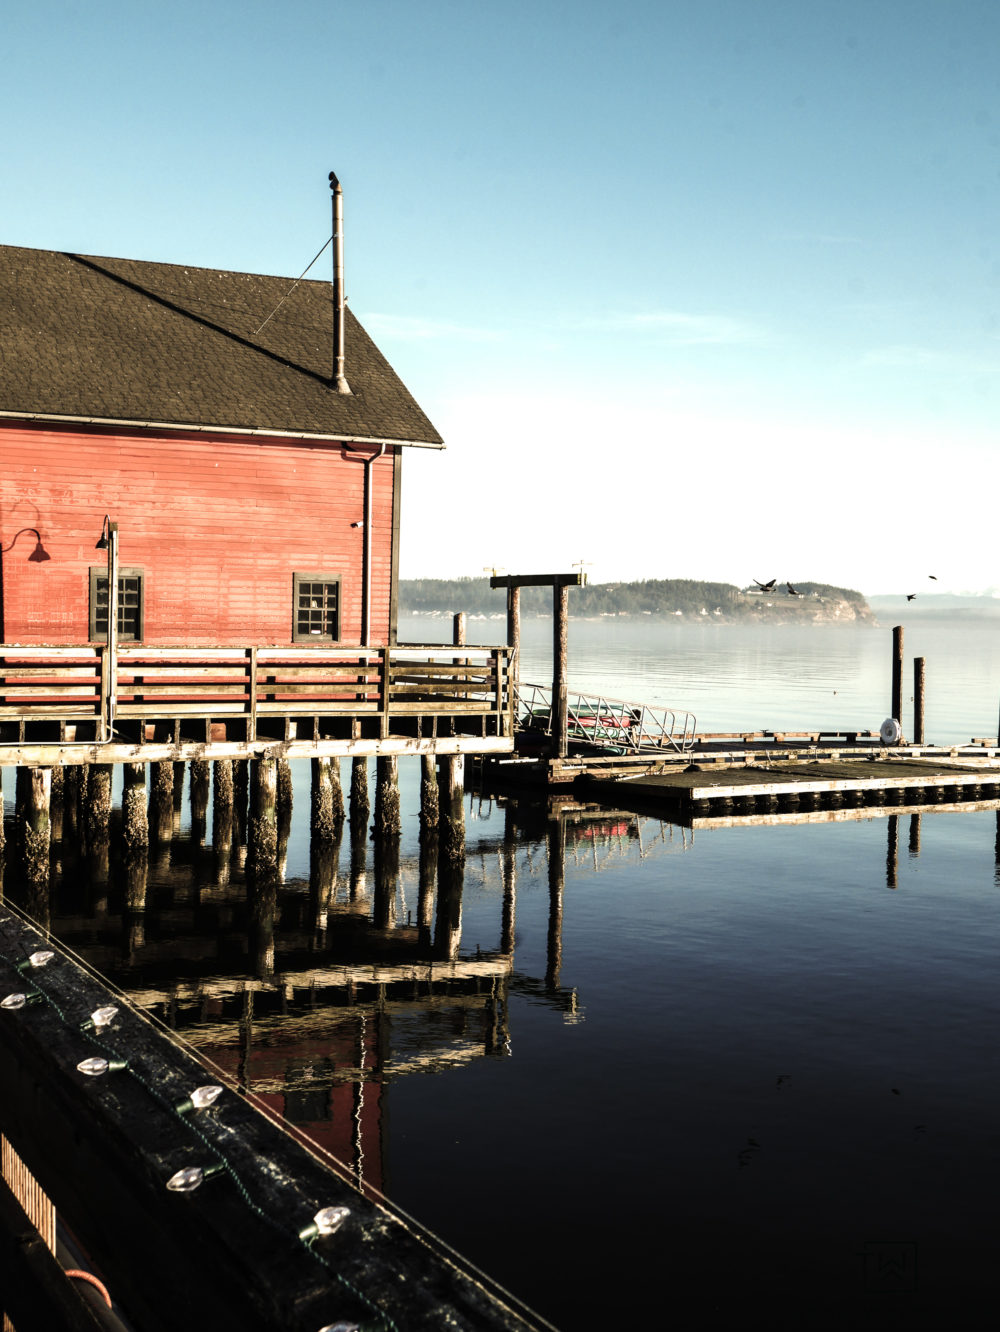 Winter time in Coupeville, Washington on Whidbey Island.